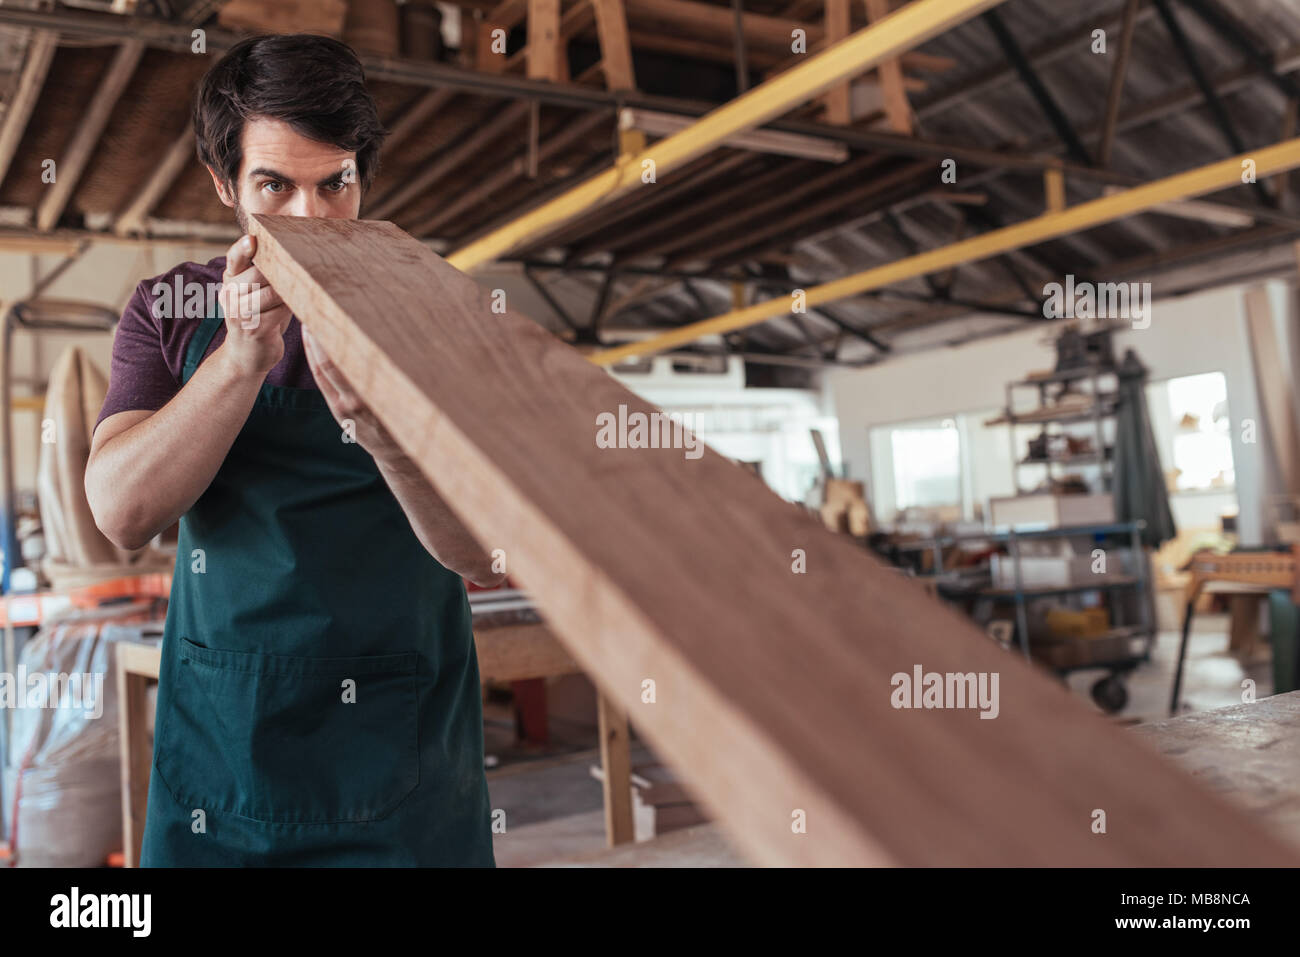 Woodworker skillfully examining a plank of wood in his workshop - Stock Image